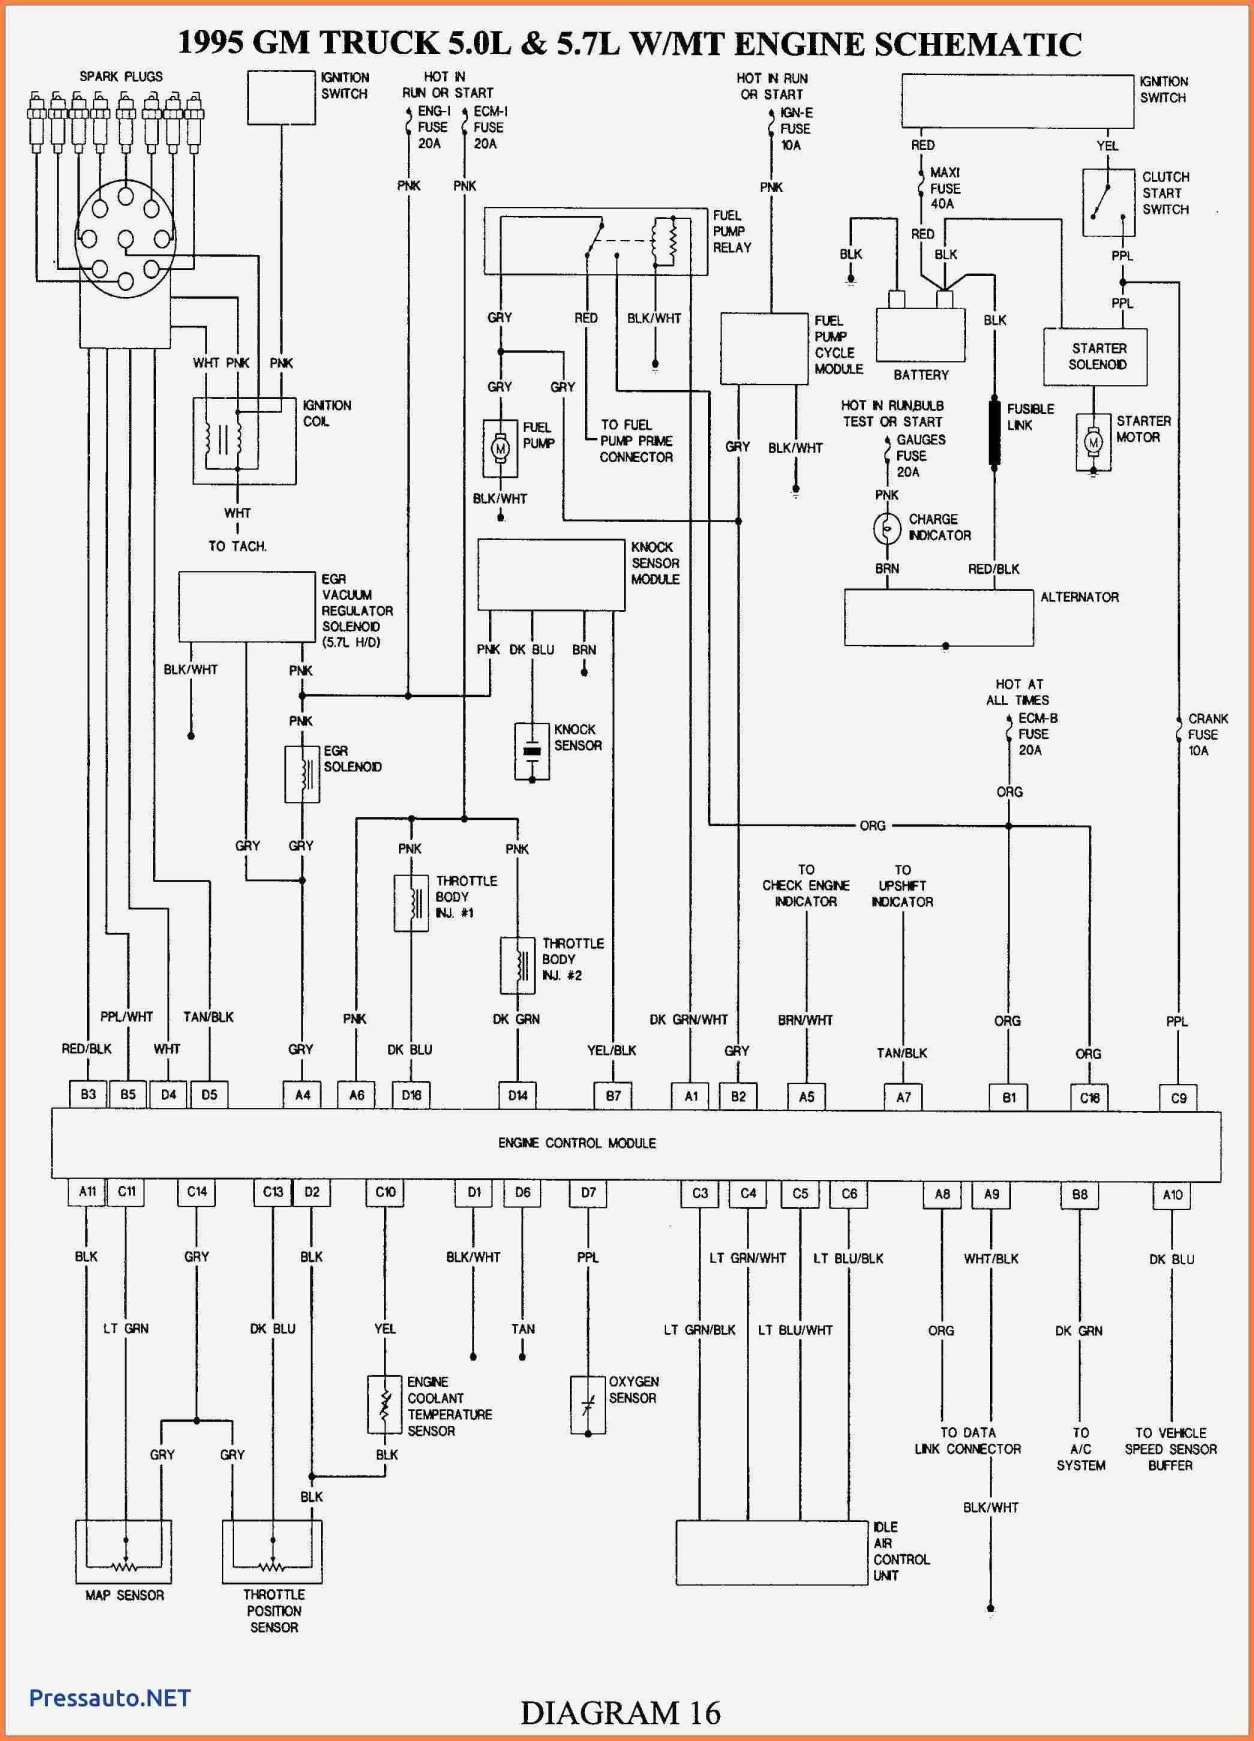 17 Chevy Truck Wiring Diagram